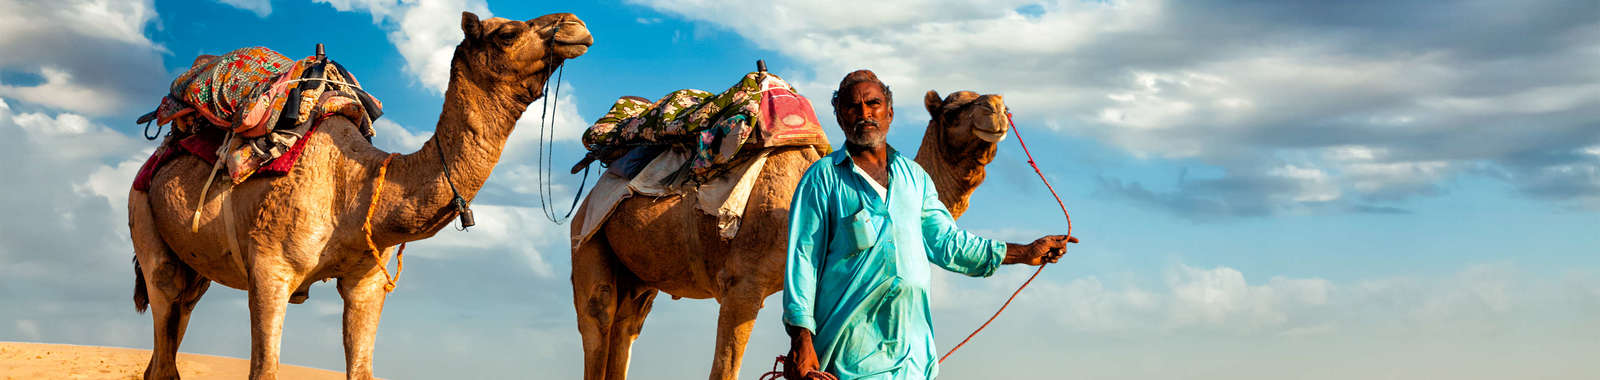 Tailor made holiday to Pushkar Camel Fair in Rajasthan, India